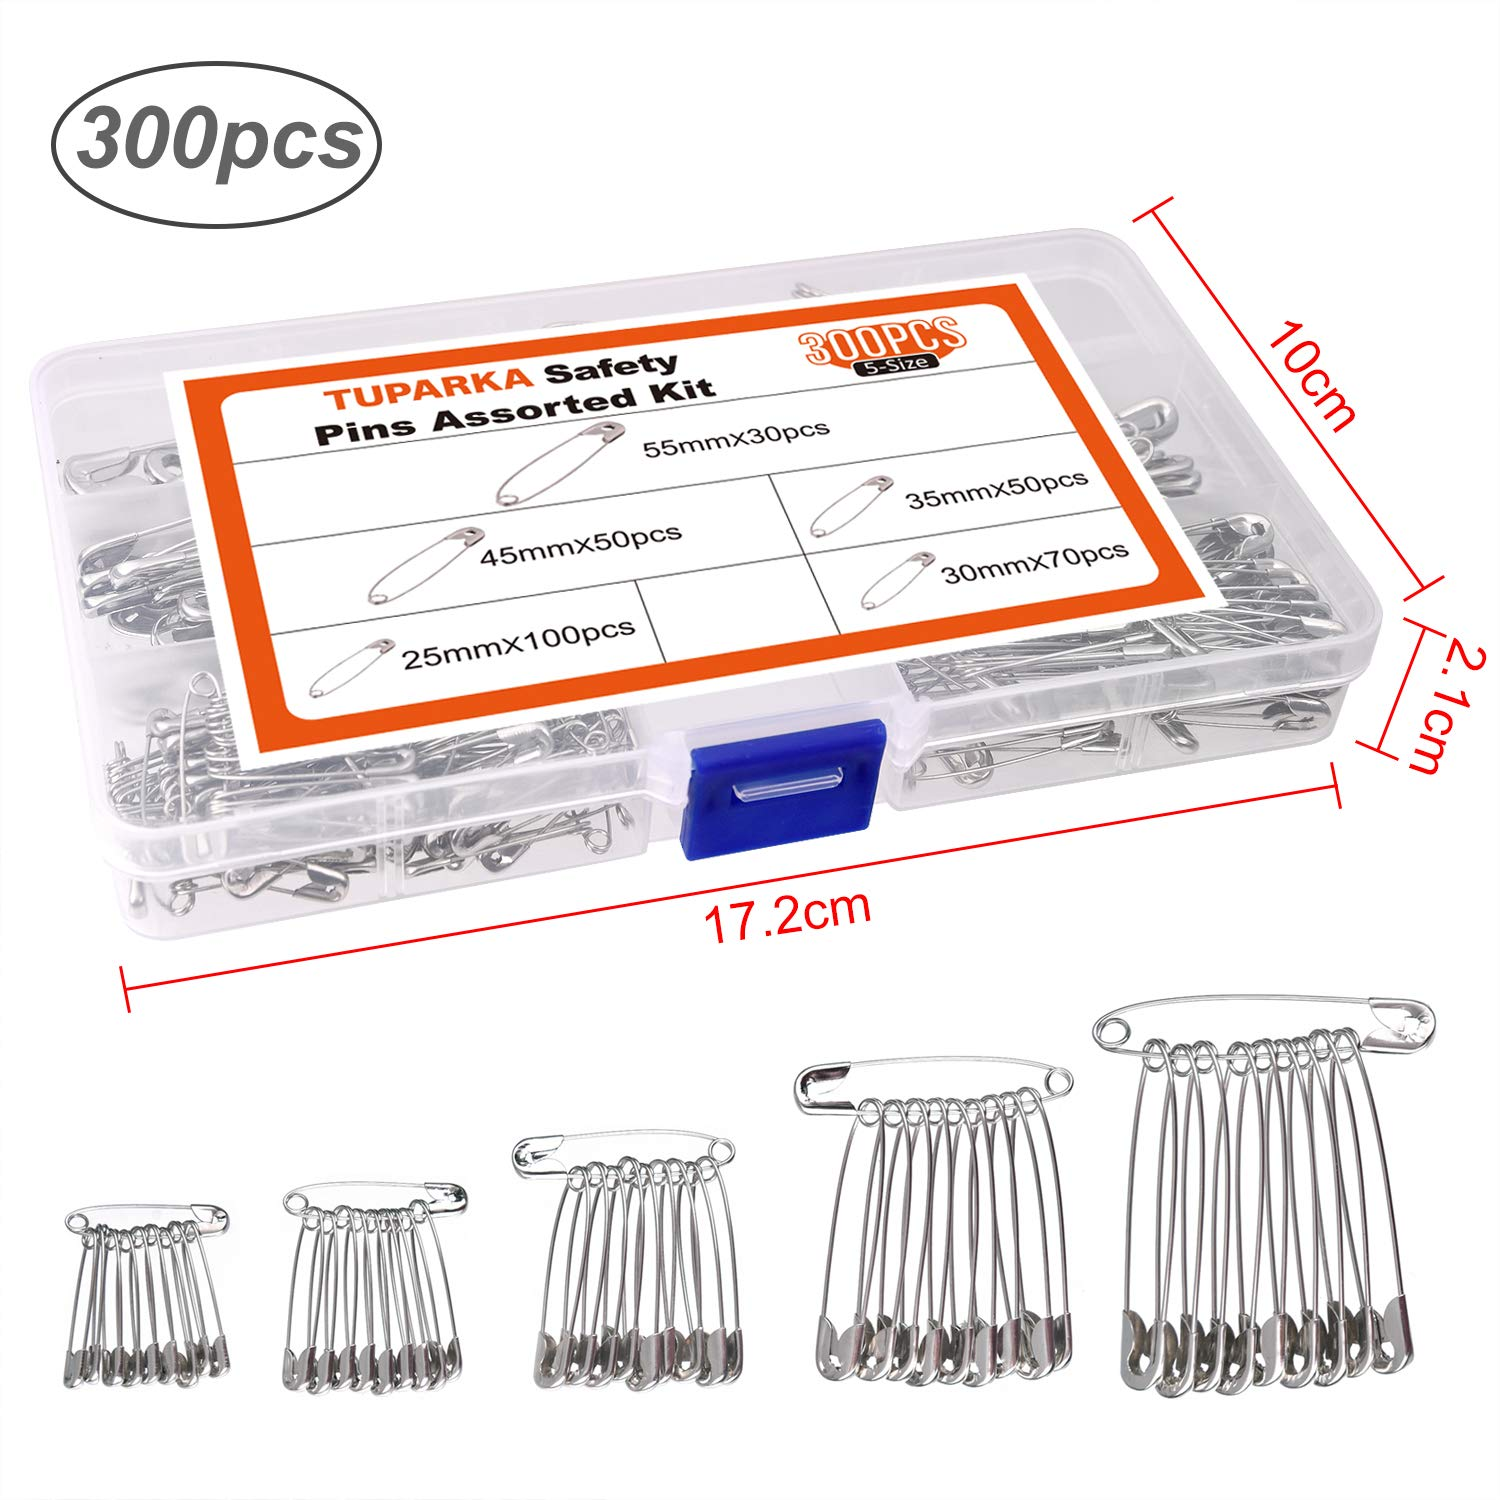 25,30,35,45,55mm TUPARKA 300 Pcs Safety Pins Assorted for Home Office Use Art Craft Sewing Jewelry Making,5 Sizes